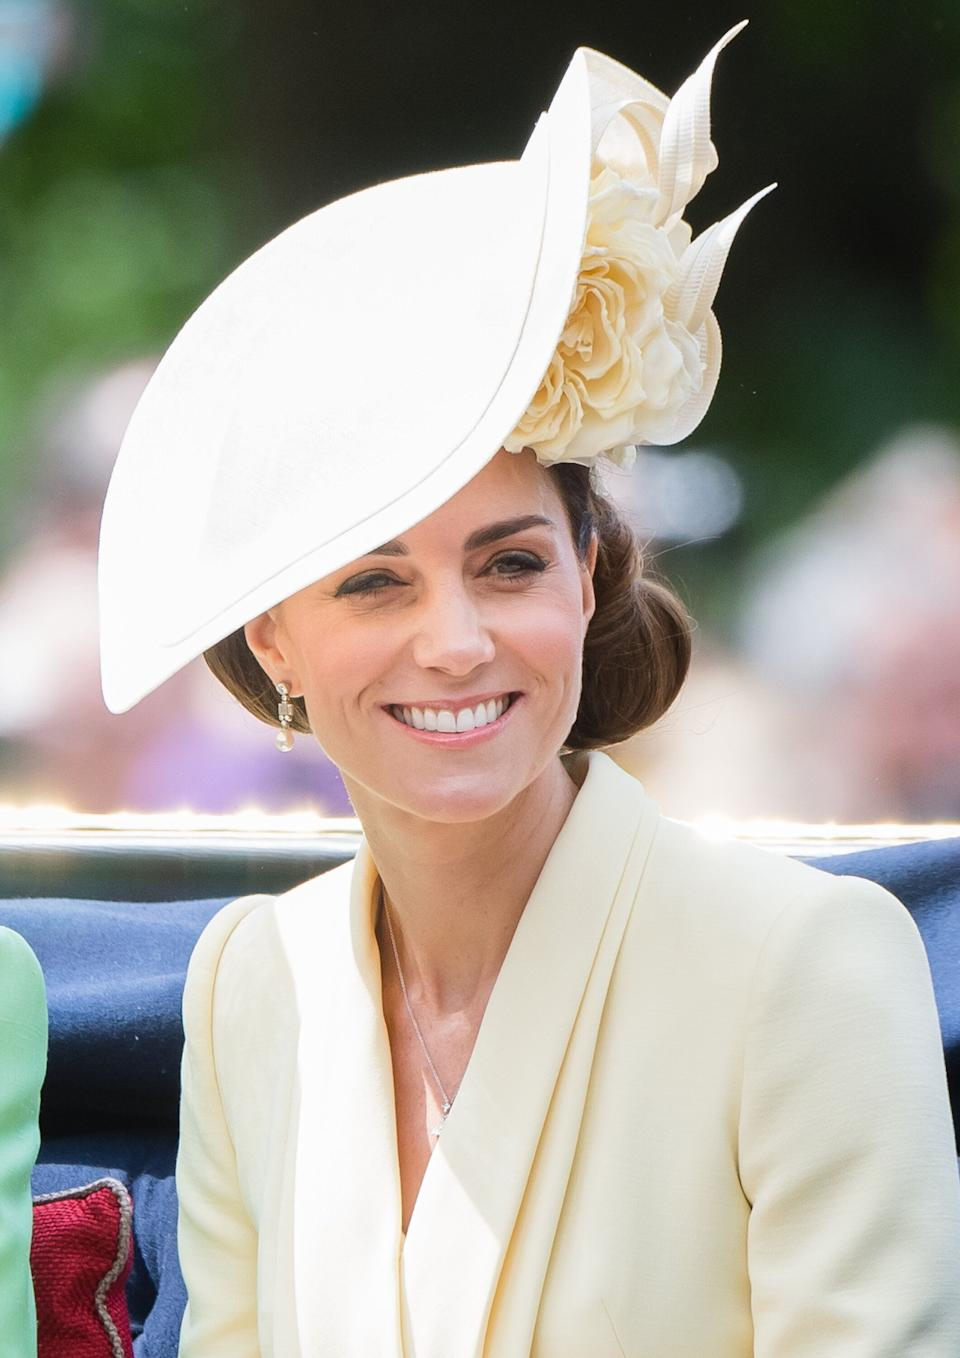 LONDON, ENGLAND - JUNE 08: Catherine, Duchess of Cambridge rides by carriage down the Mall during Trooping The Colour, the Queen's annual birthday parade, on June 08, 2019 in London, England. (Photo by Samir Hussein/Samir Hussein/WireImage)